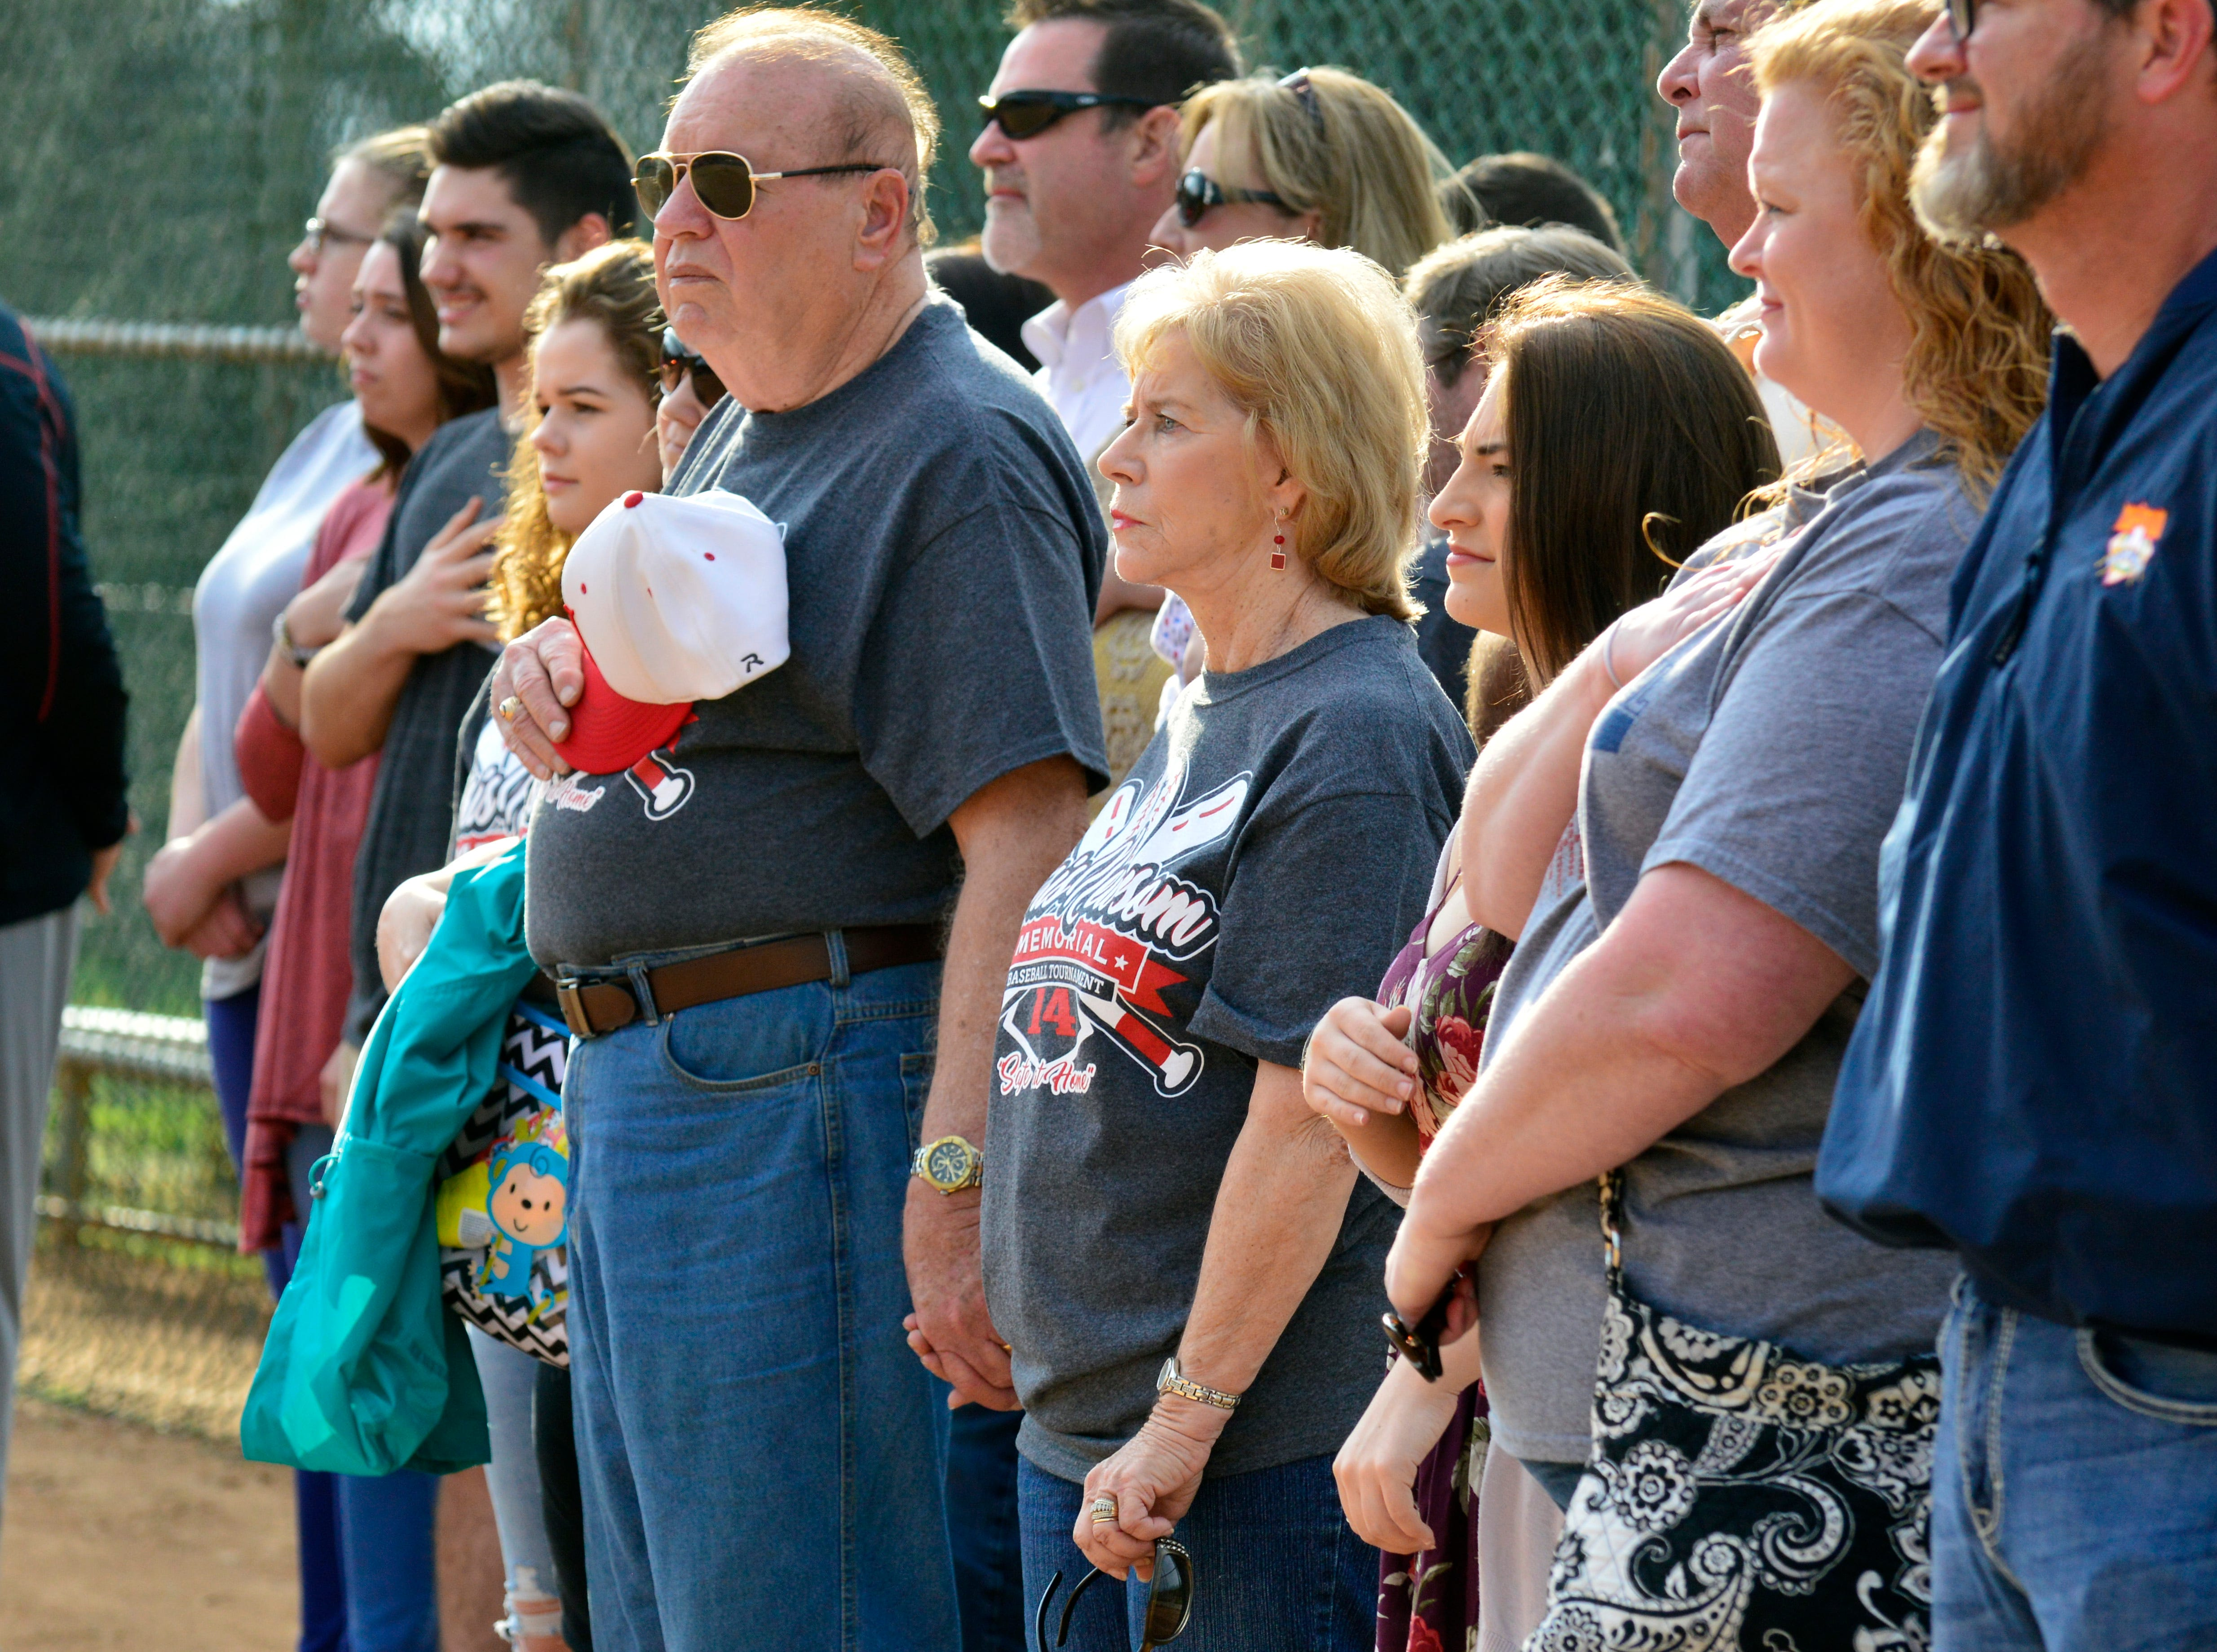 Hugh and Mary Newsom during the playing of the National Anthem at the 2018 Chris Newsom Memorial Tournament at Halls Park.